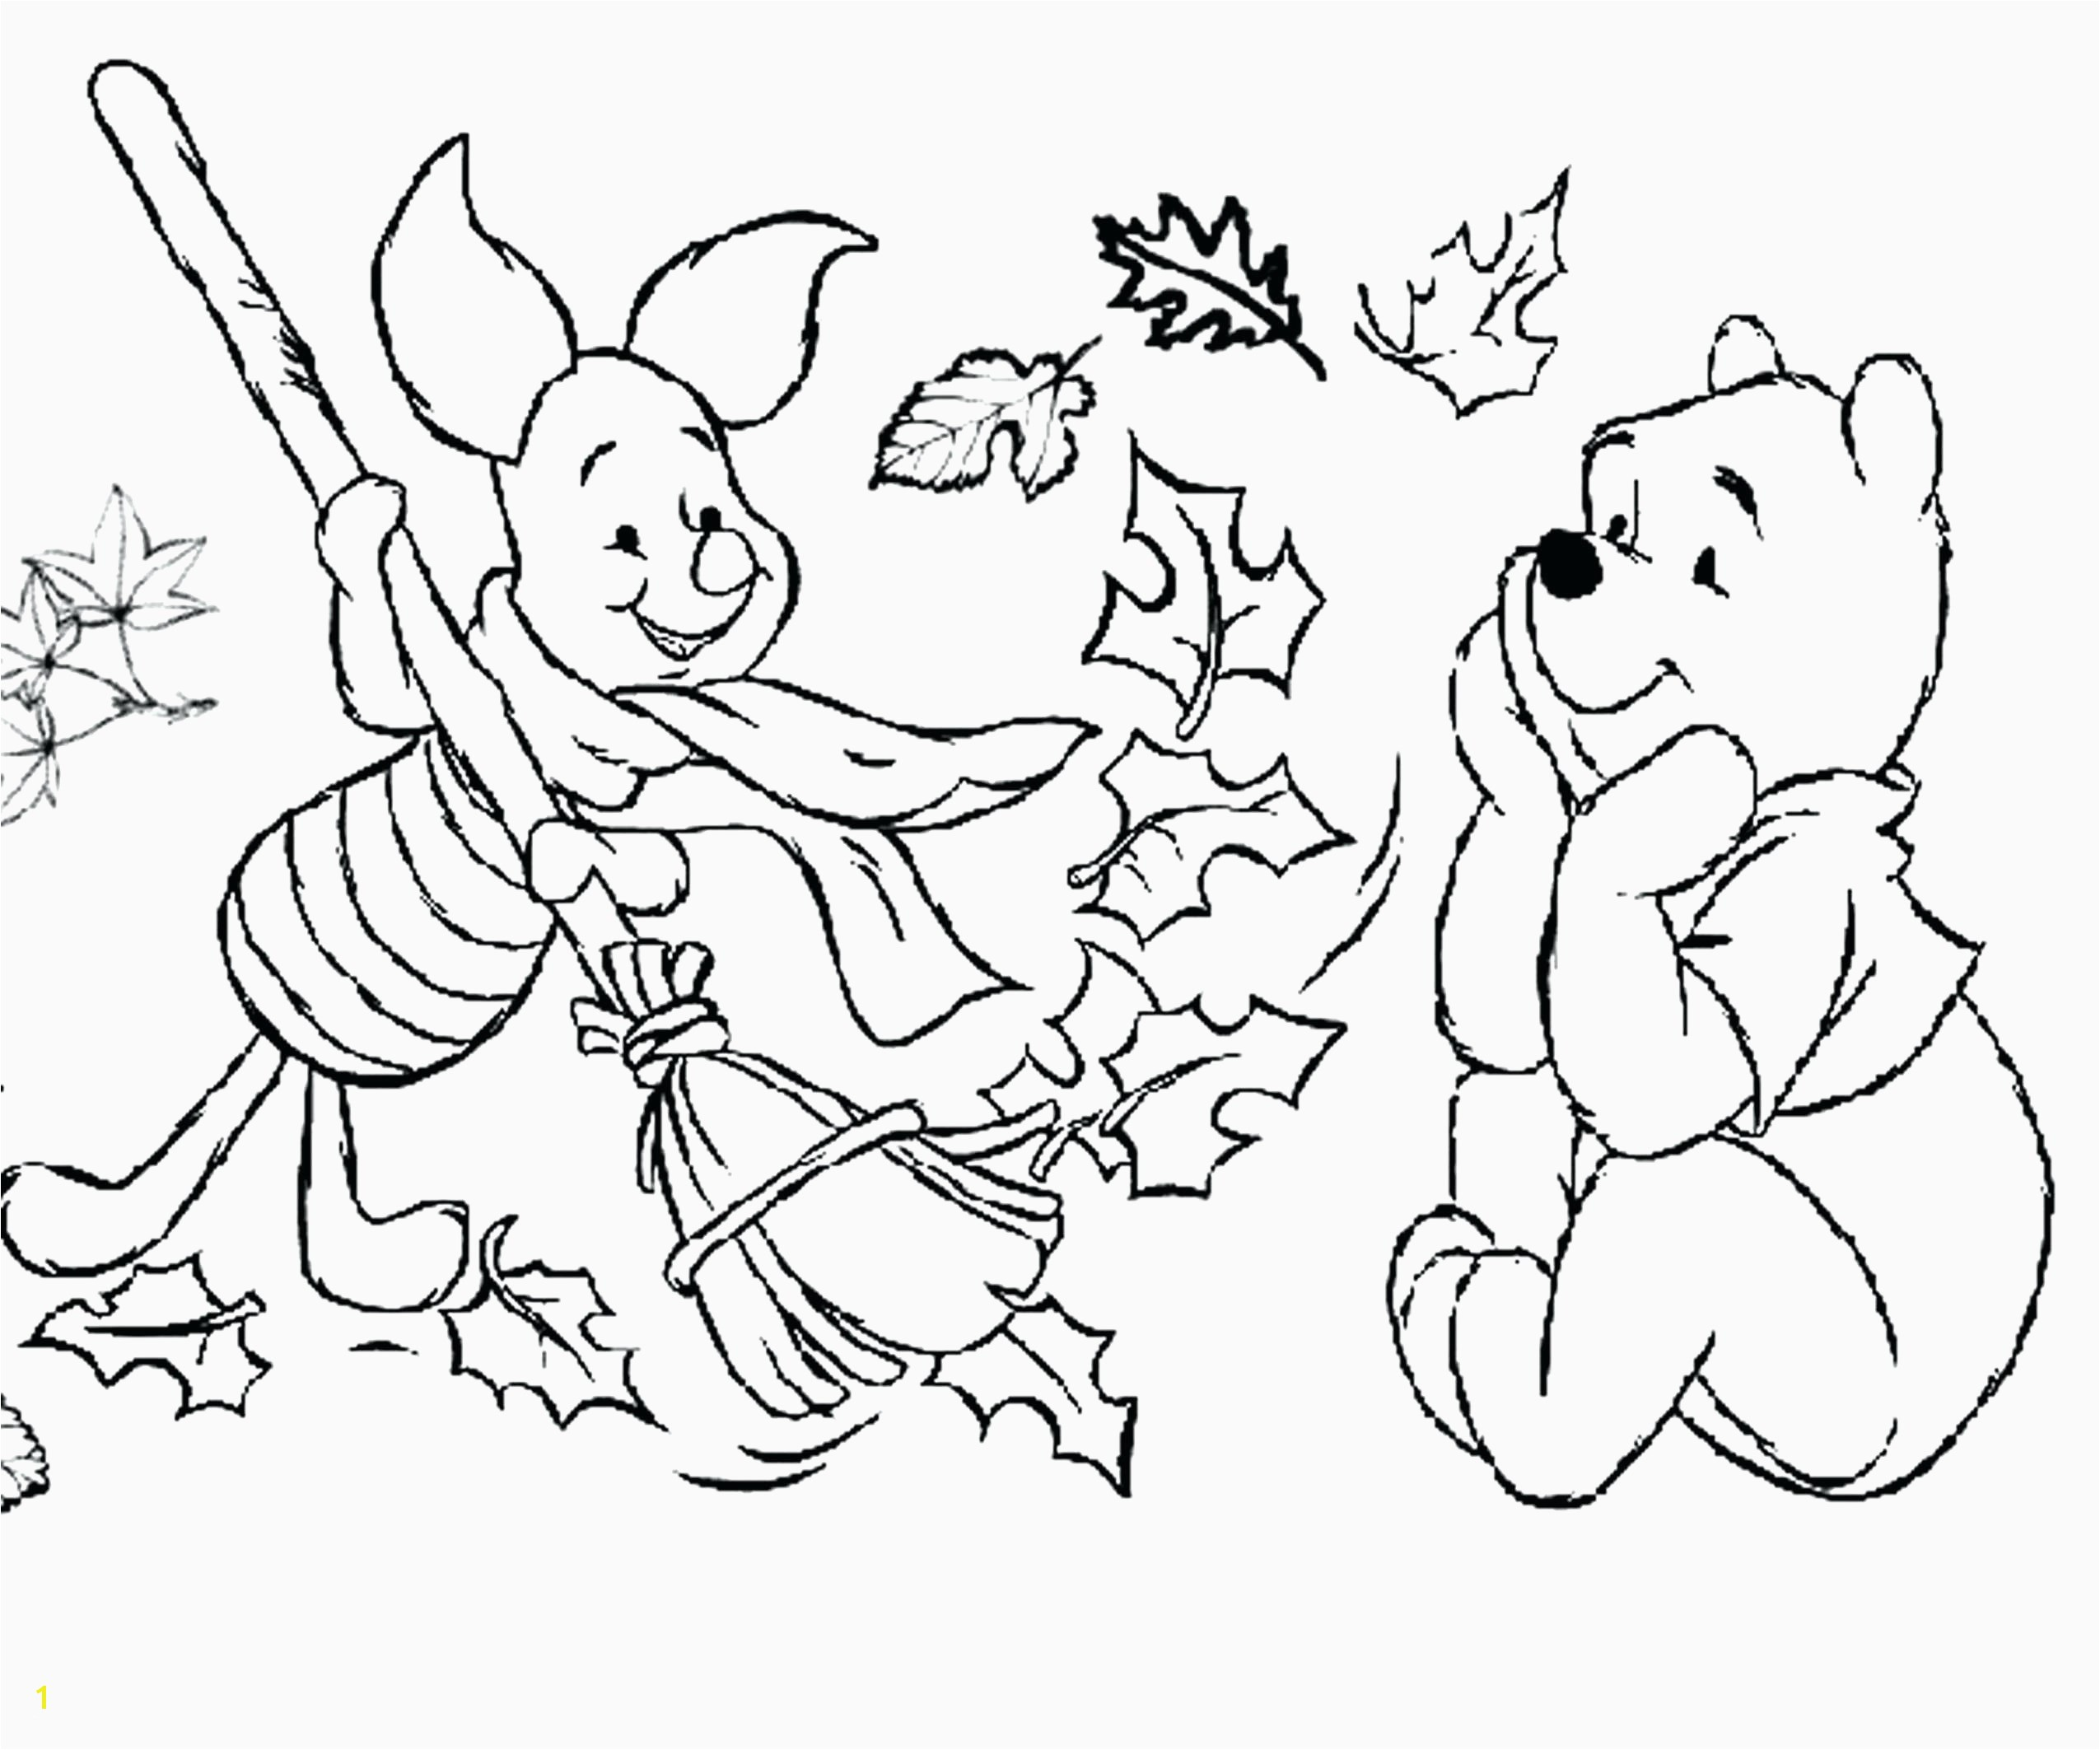 Coloring Pages A Bible Luxury Free Coloring Unique Free Kids S Best Page Coloring 0d Free Coloring